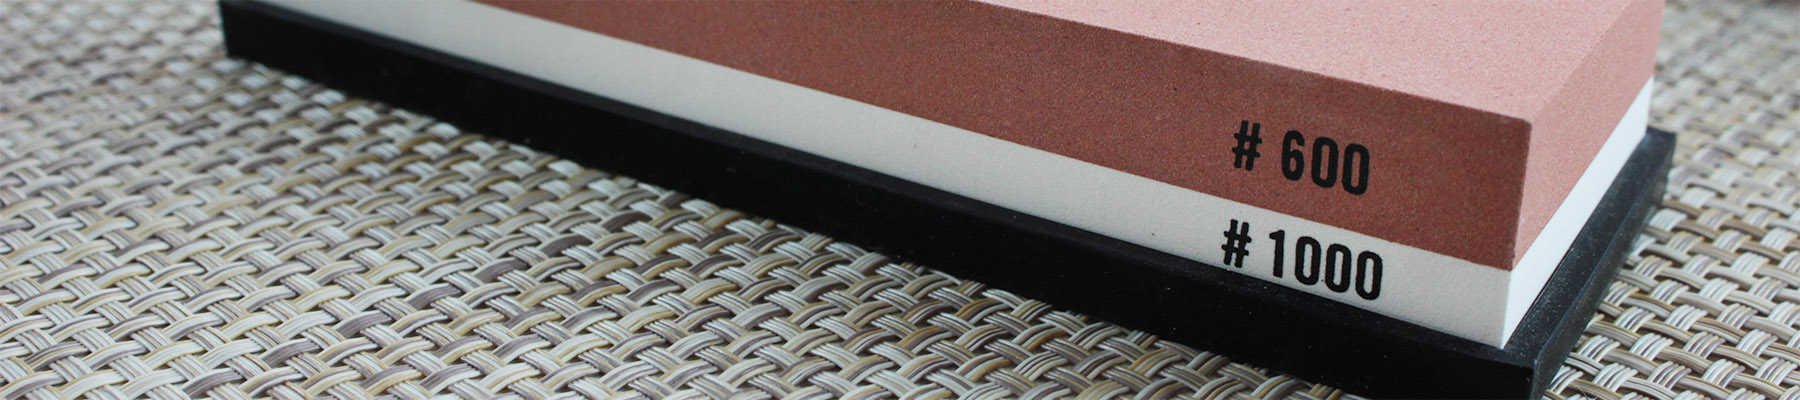 Wusaki Double-Sided Whetstone Grit 600 and 1000